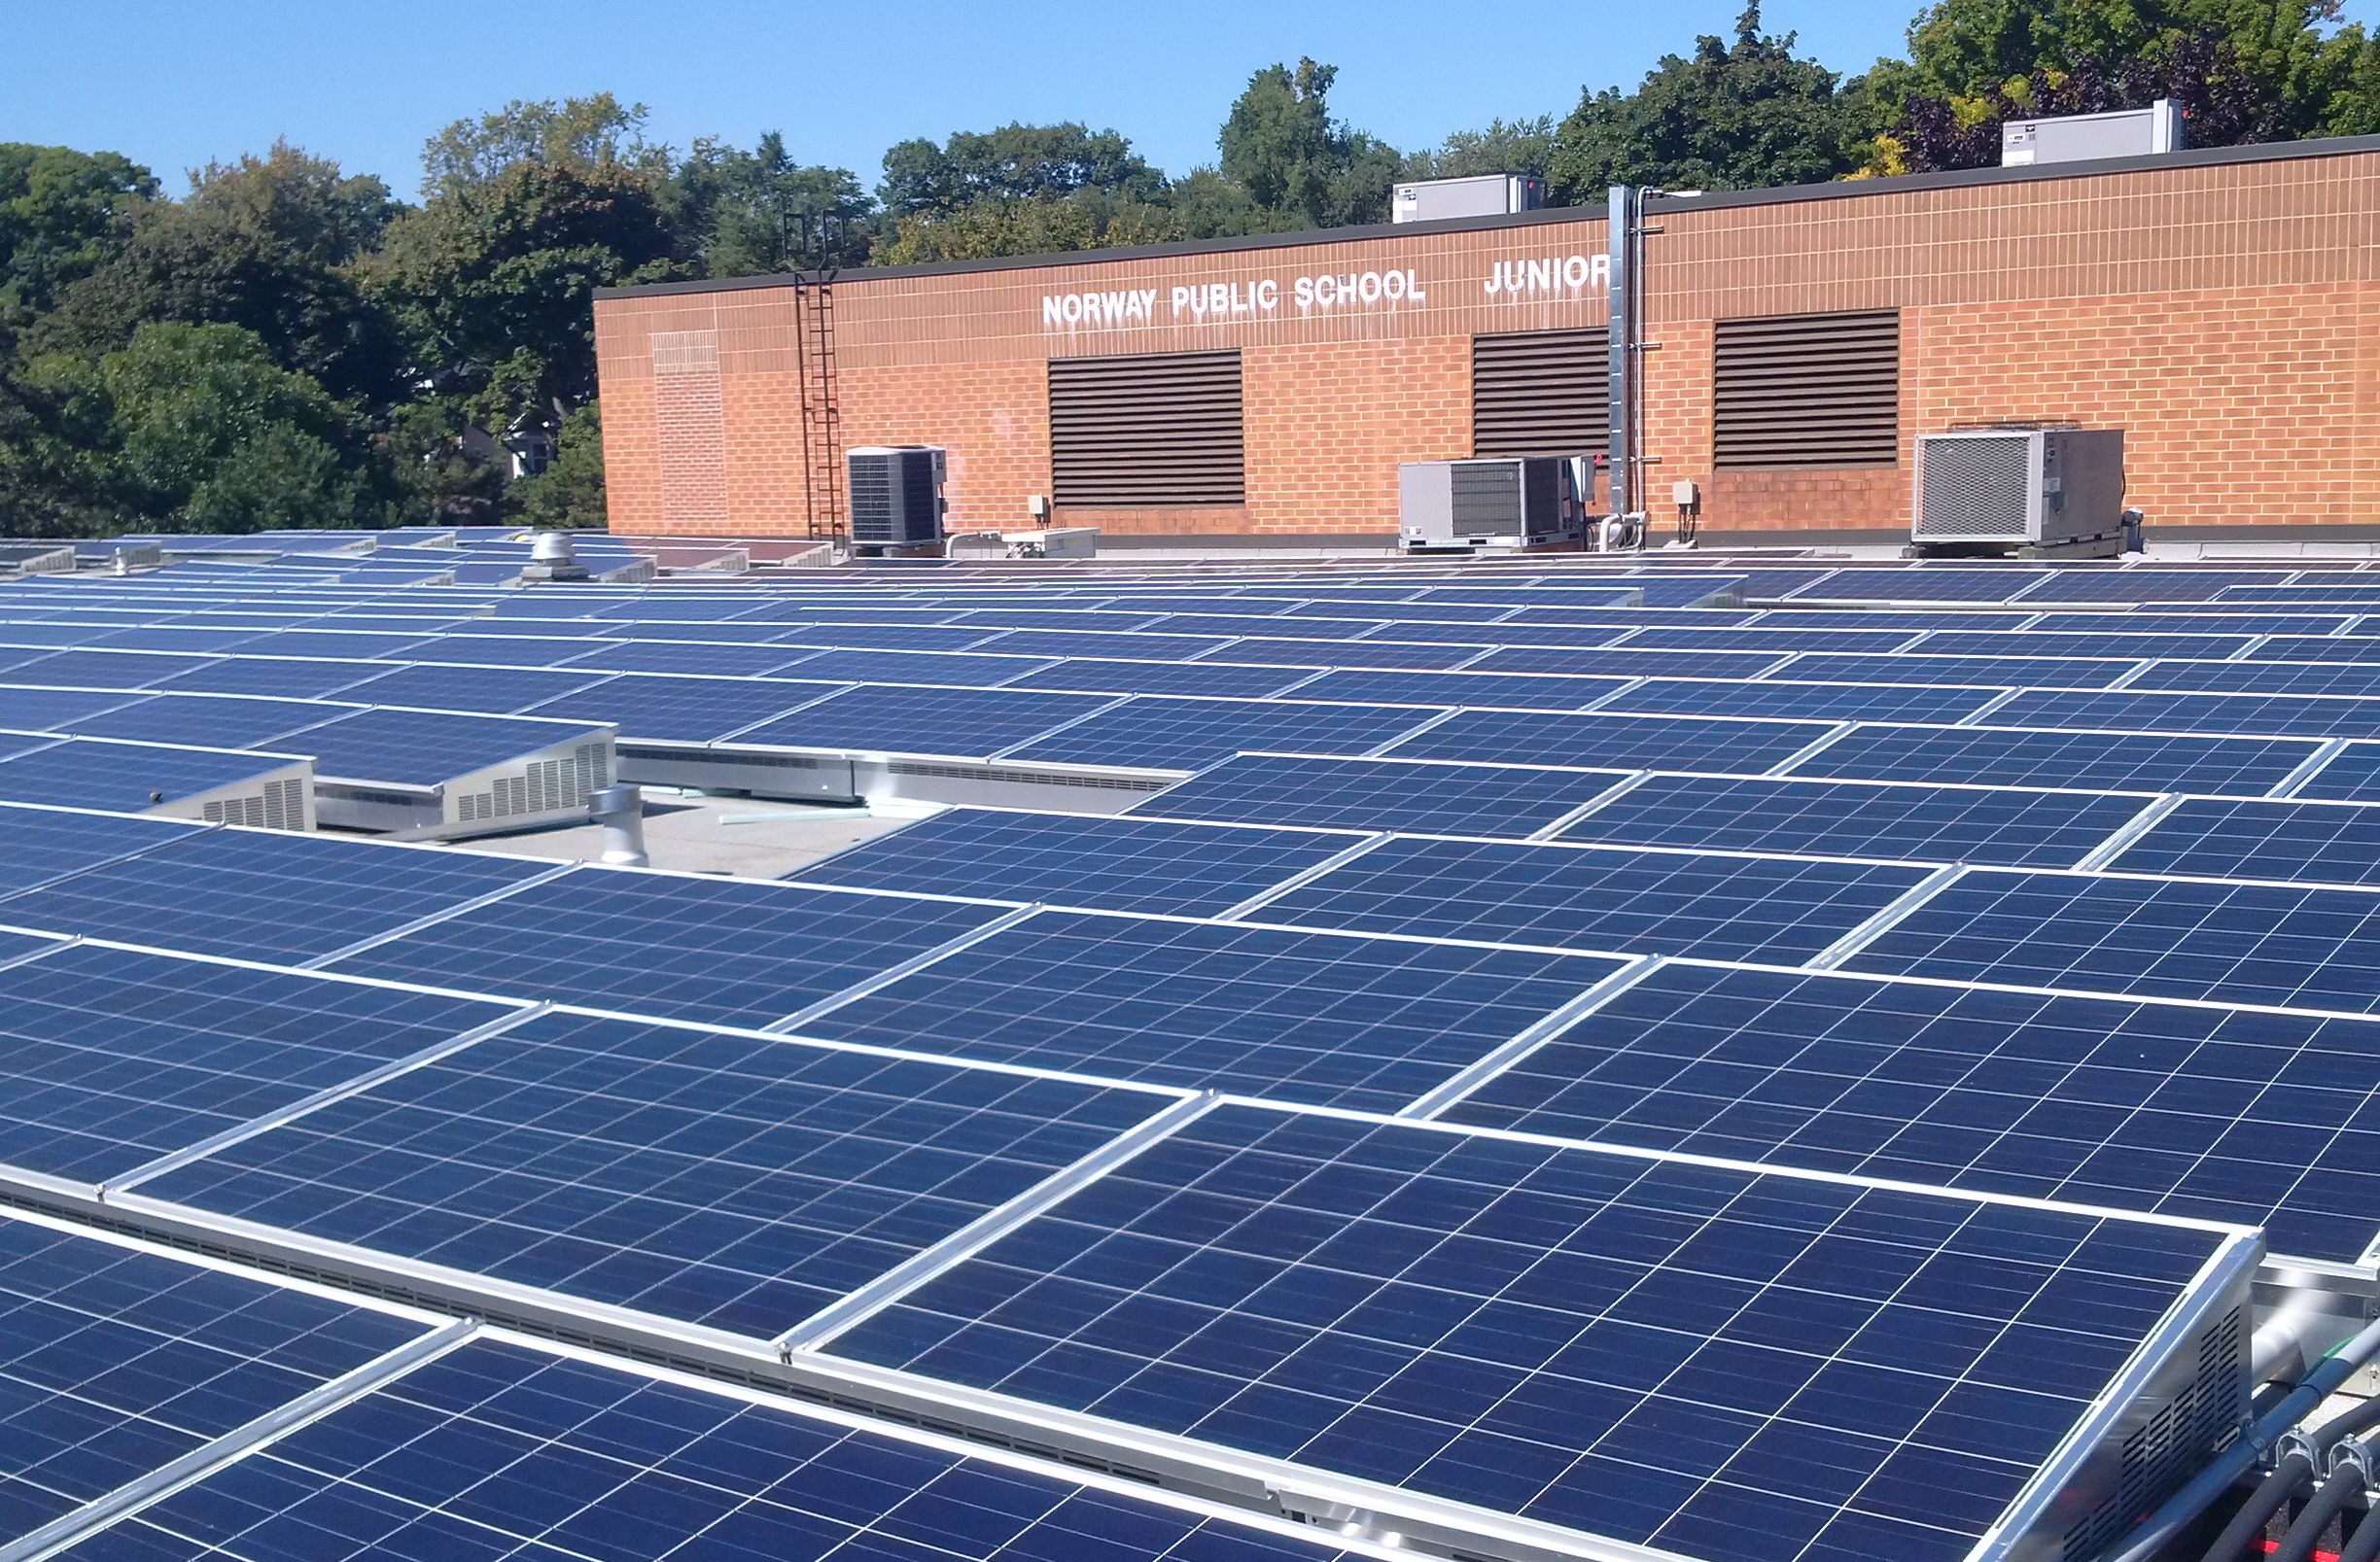 spend $30 million on solar panels for schools